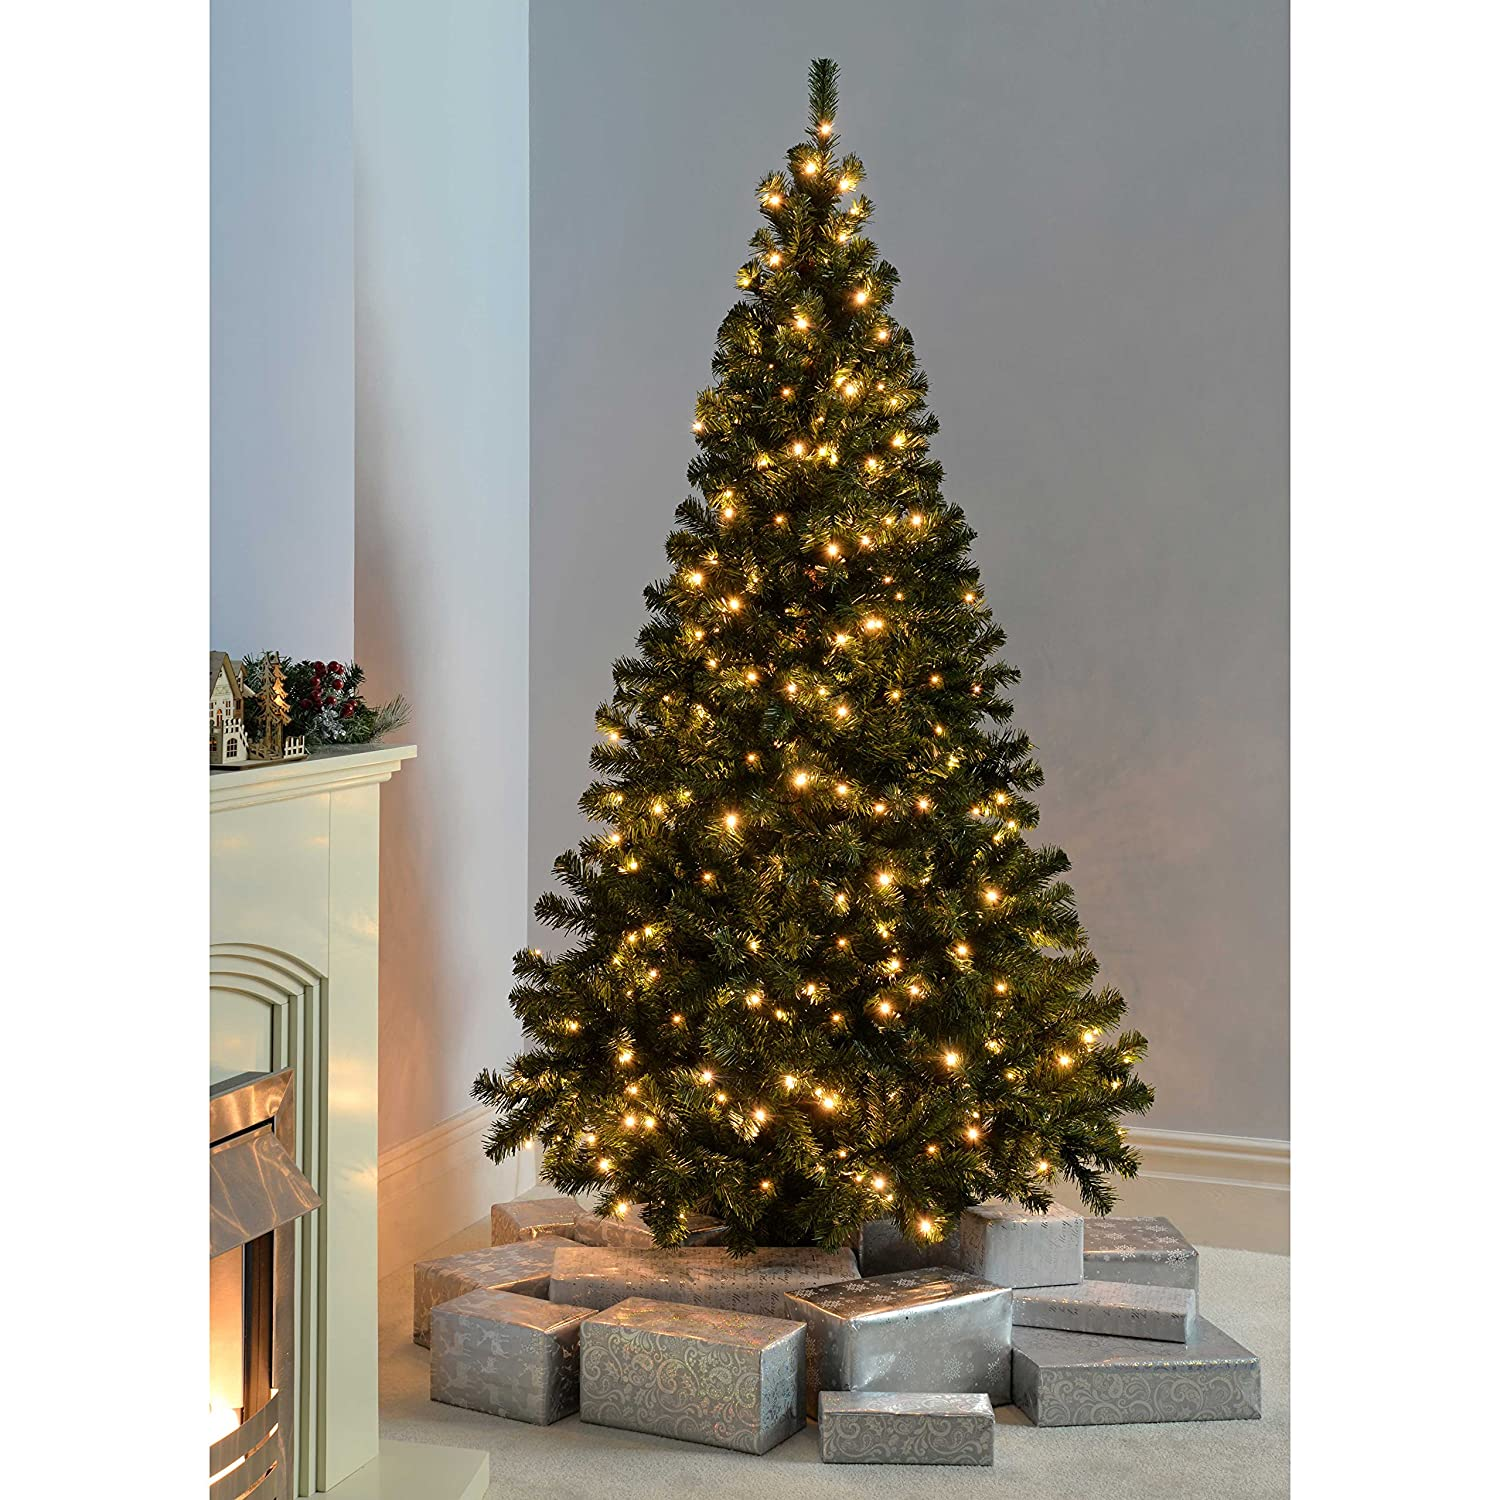 Werchristmas Prelit Spruce Multifunction Christmas Tree, 21 M  7 Feet  With 300led Lights, Green: Amazon: Kitchen & Home